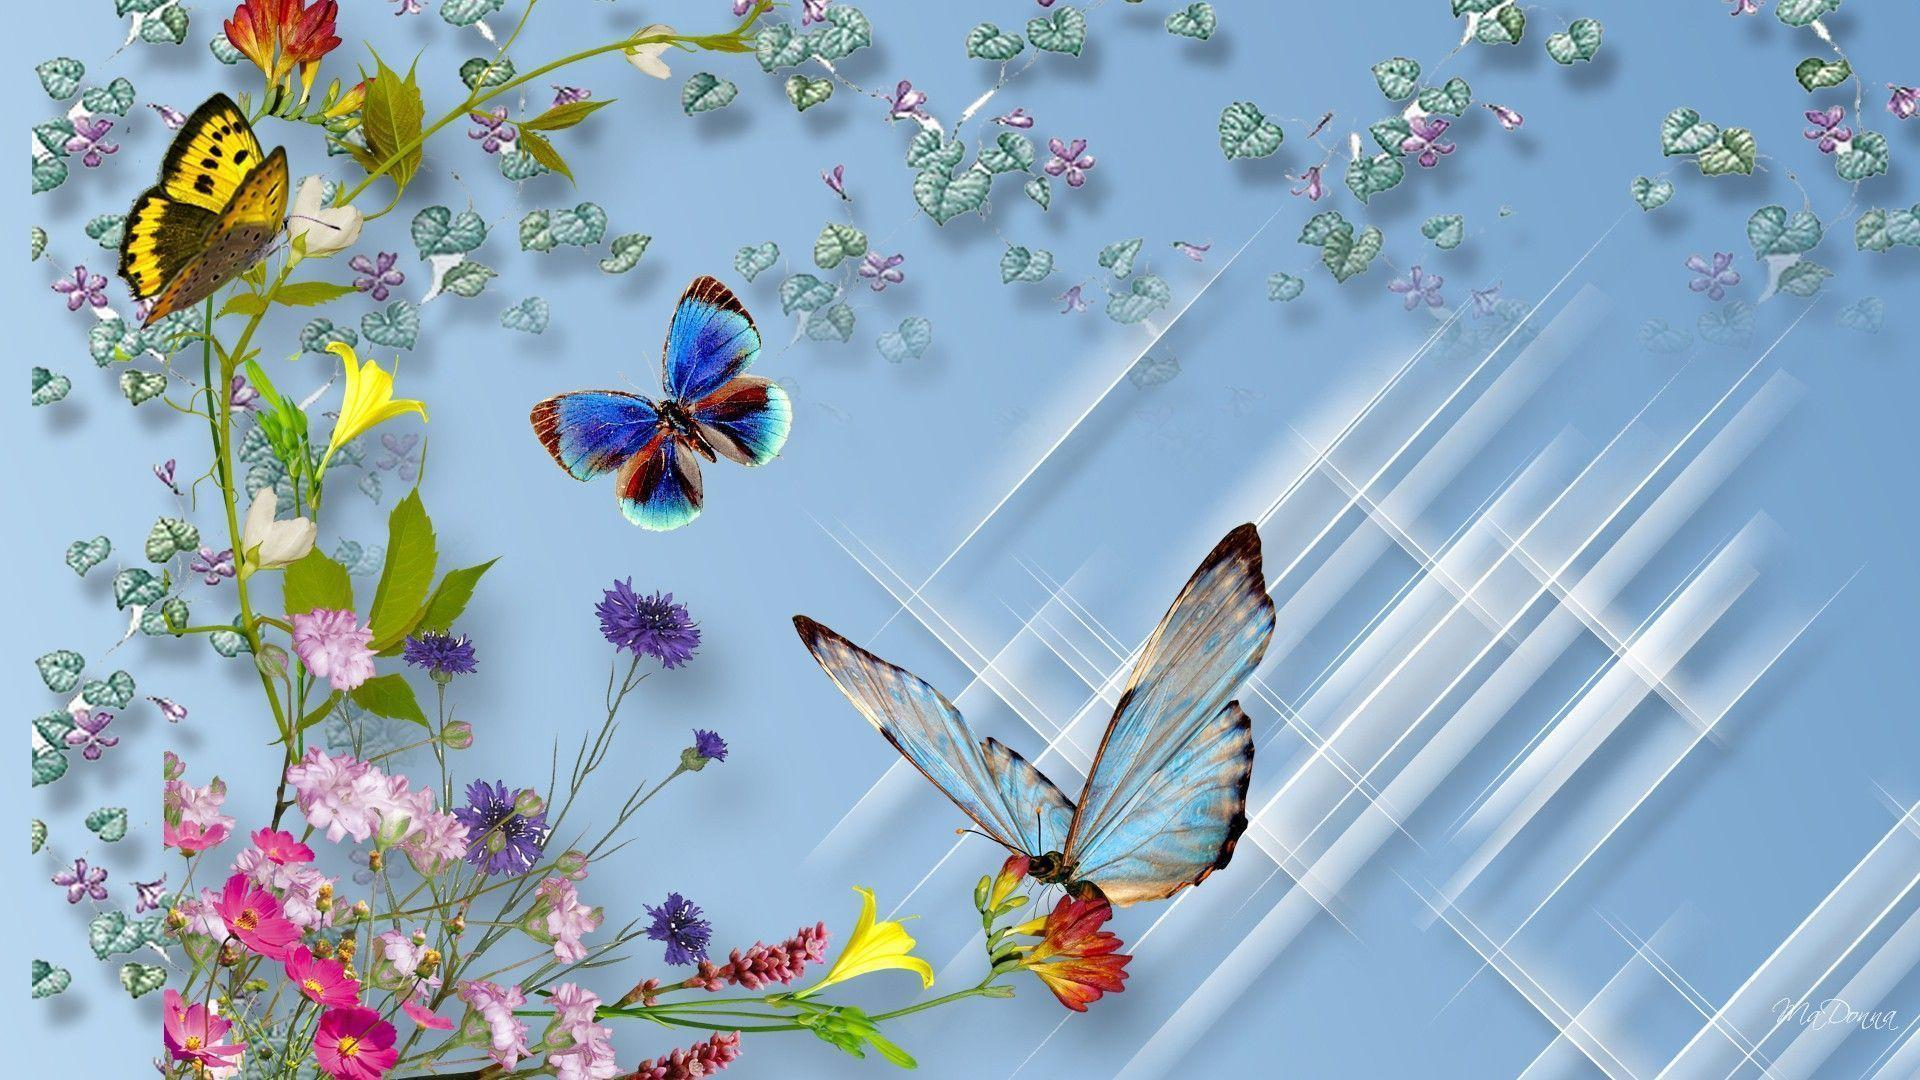 Butterfly On Flower Wallpapers Wallpaper Cave